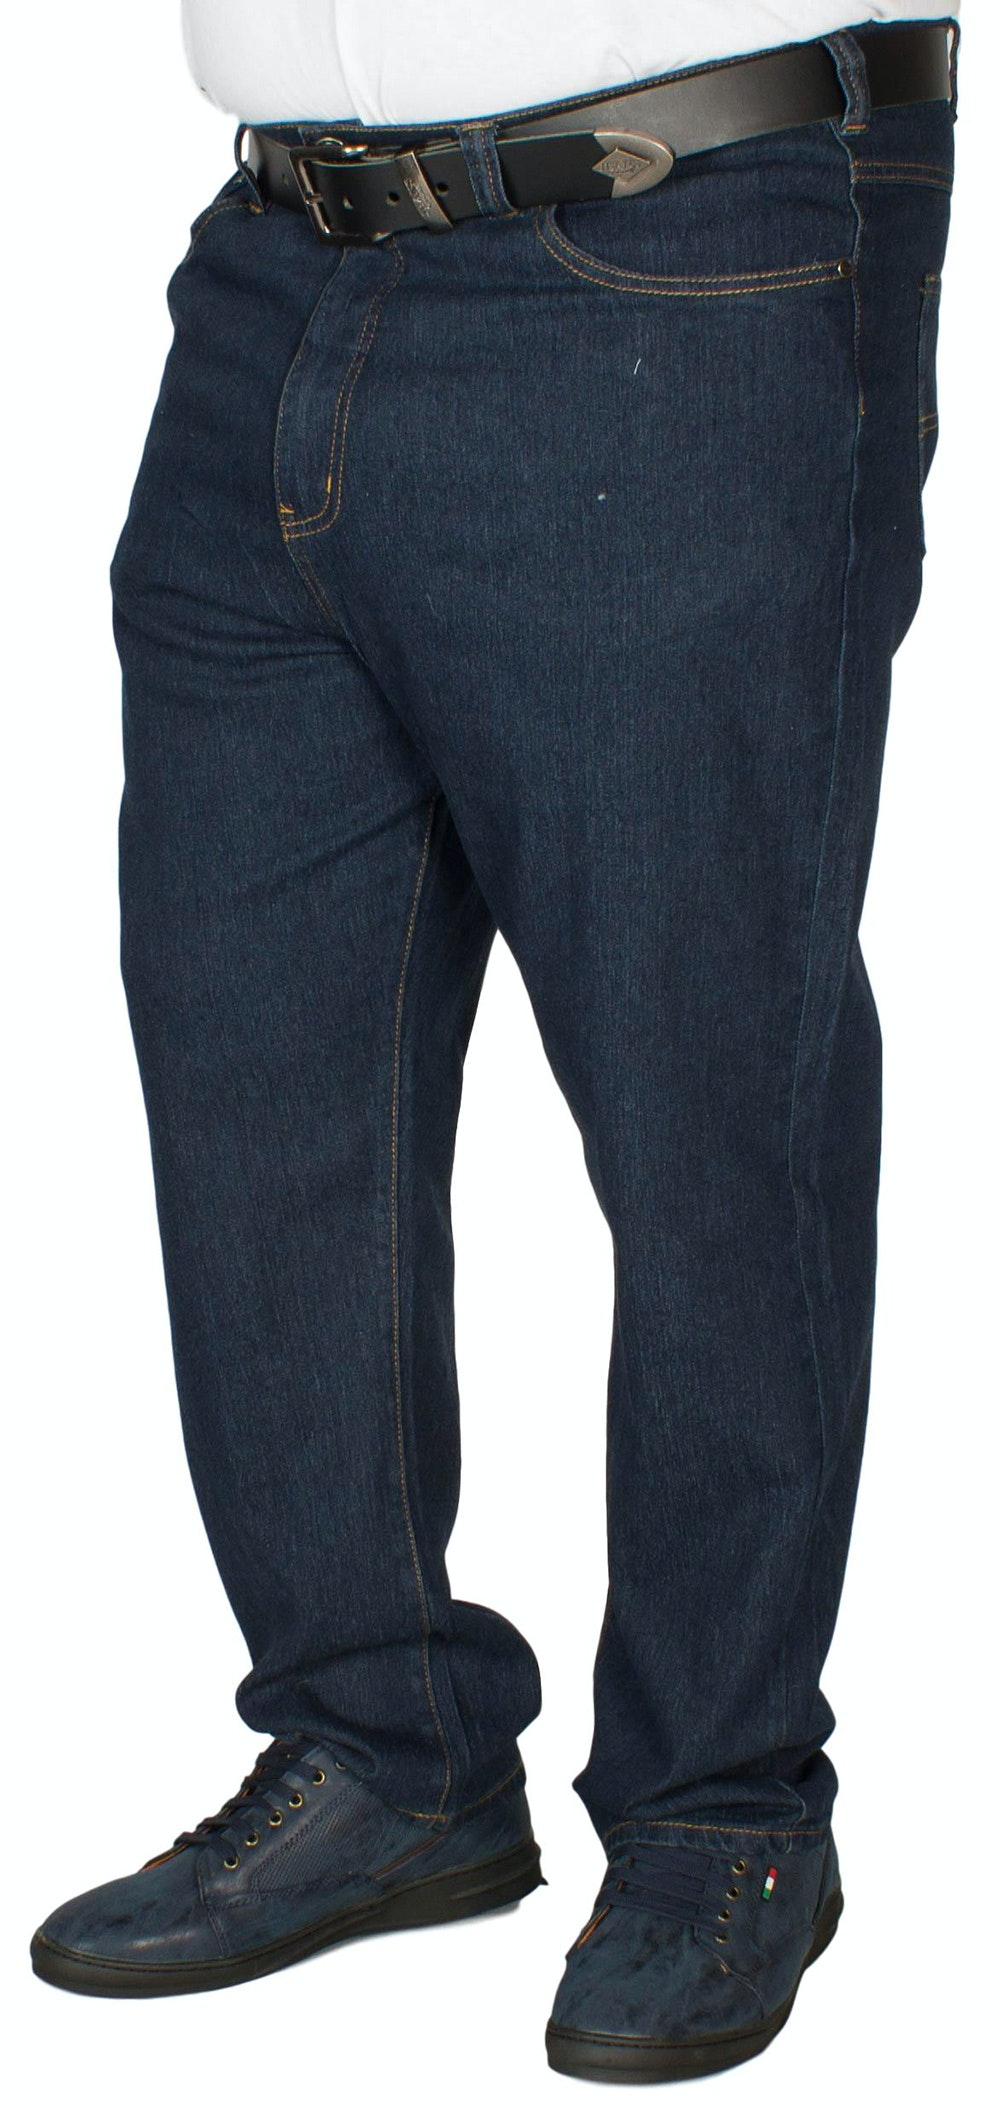 KAM Indigo Stretch Jeans